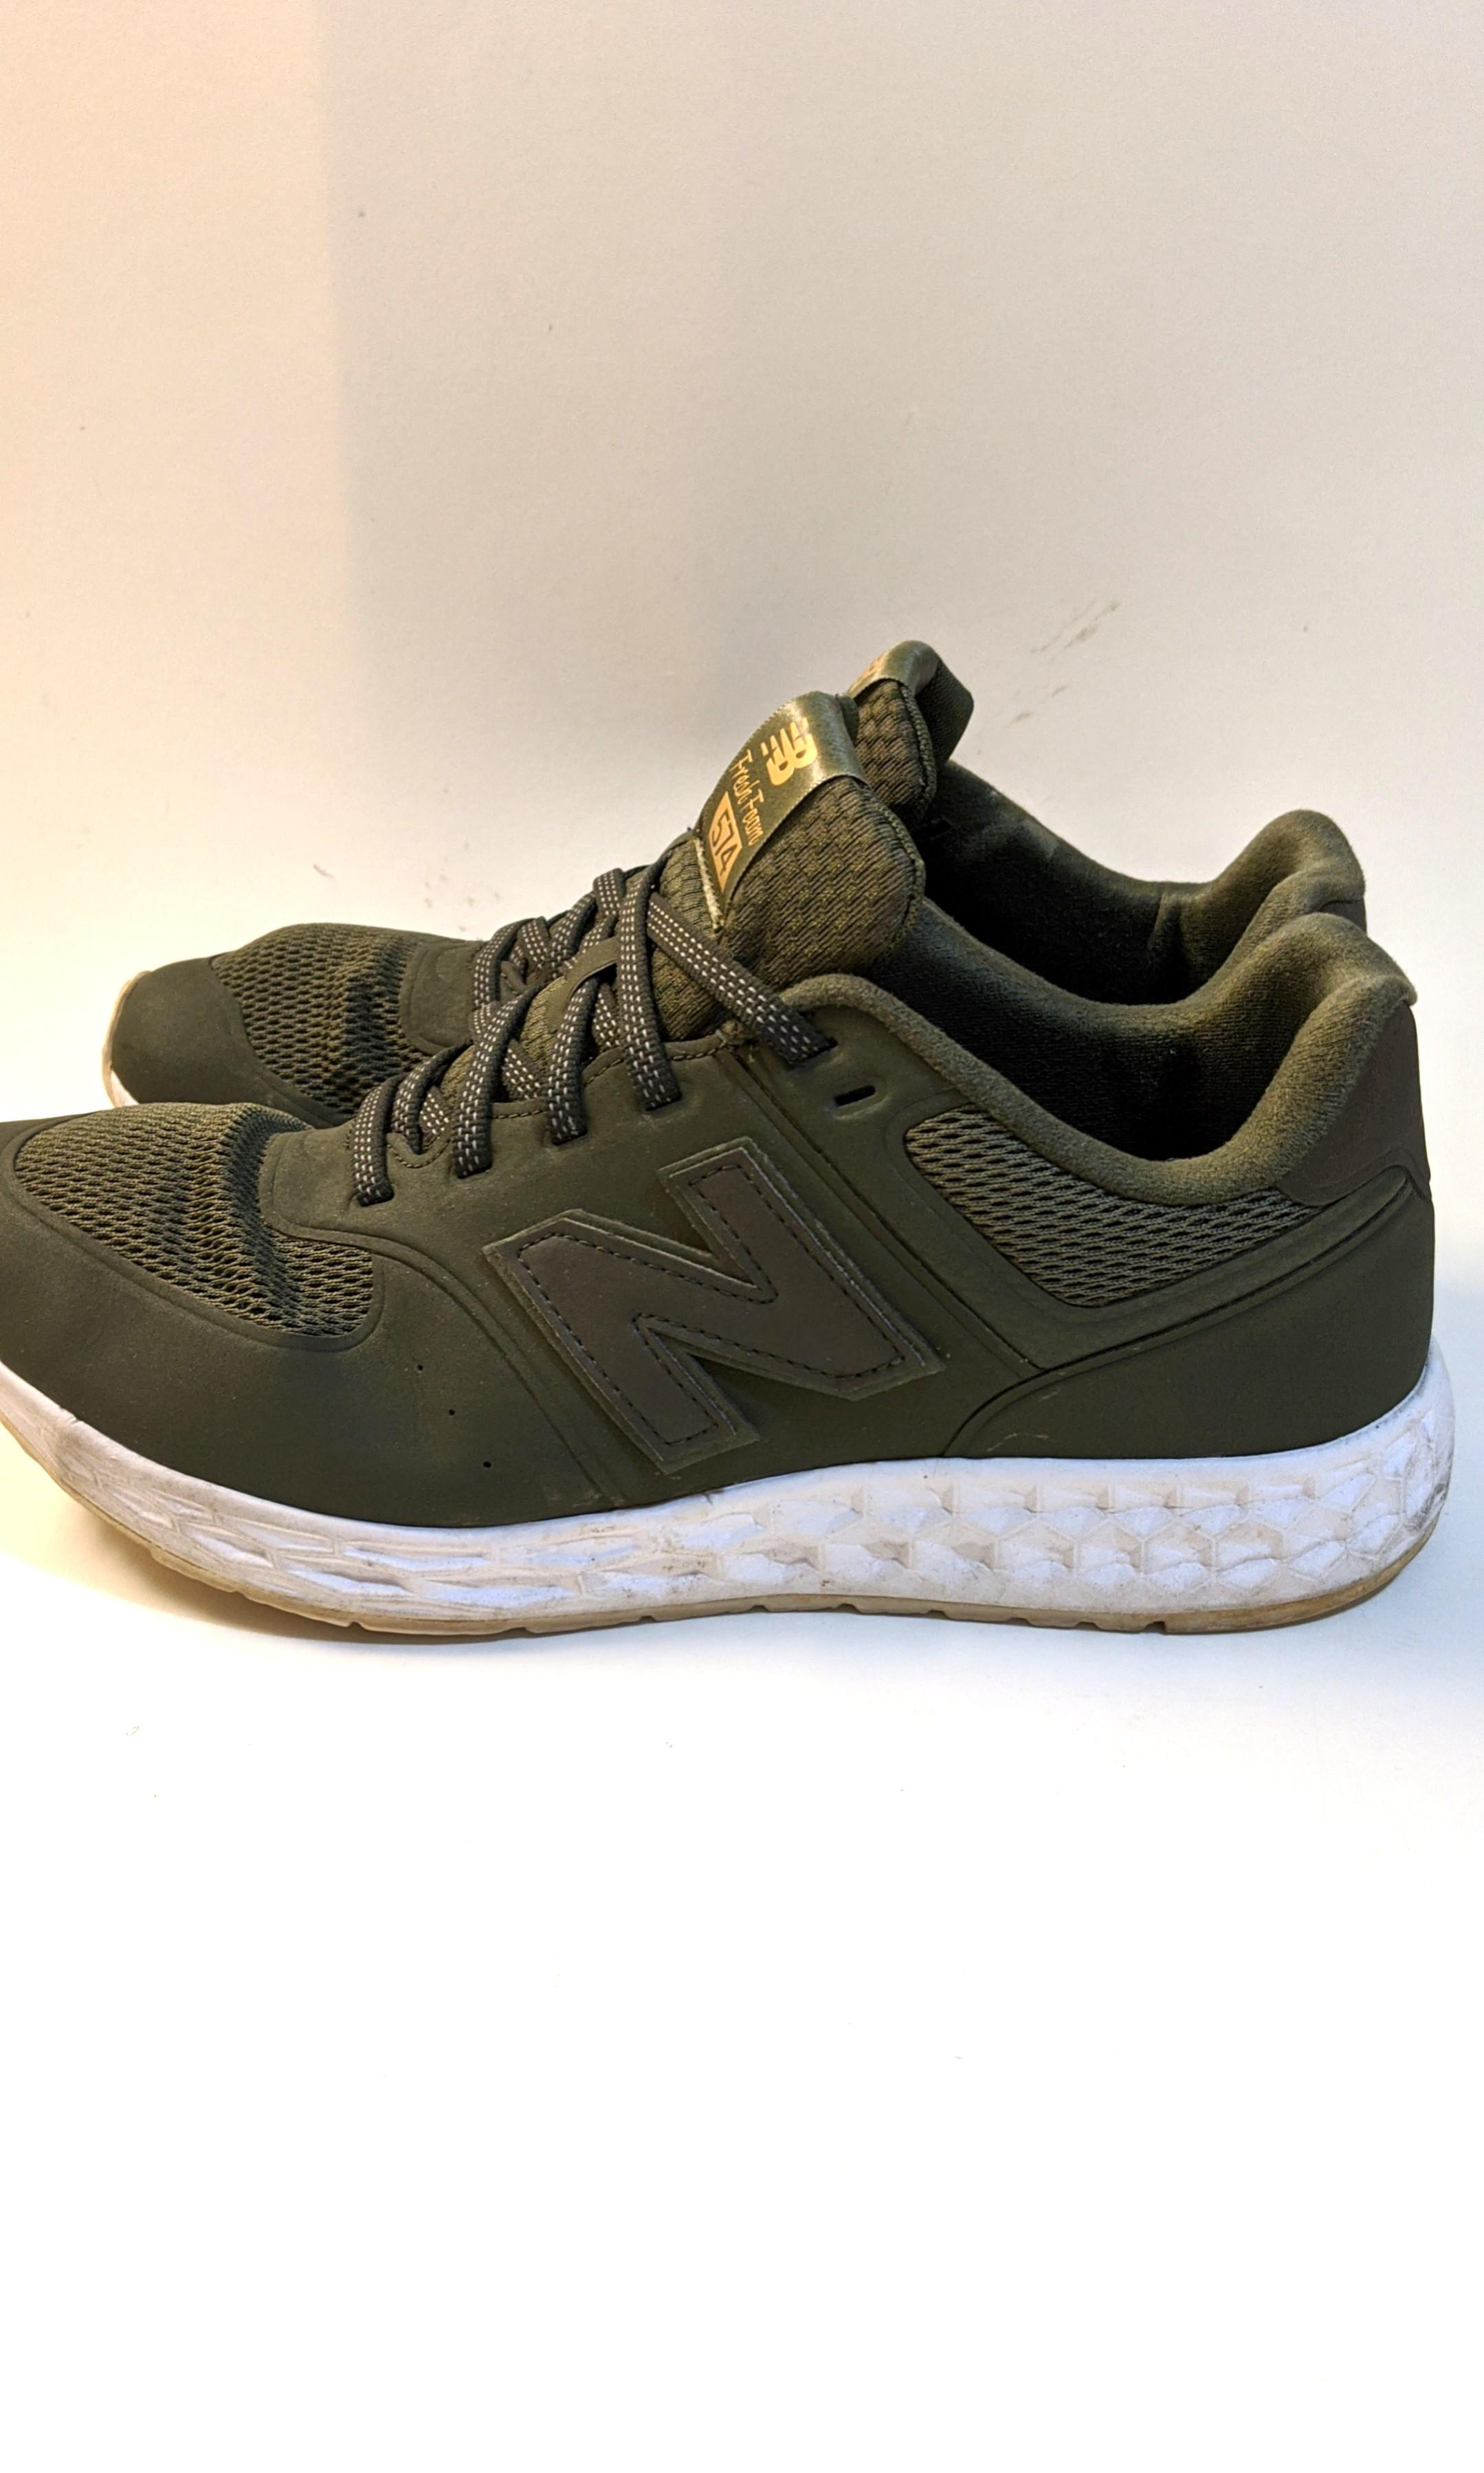 Balance 574 Army green sneakers